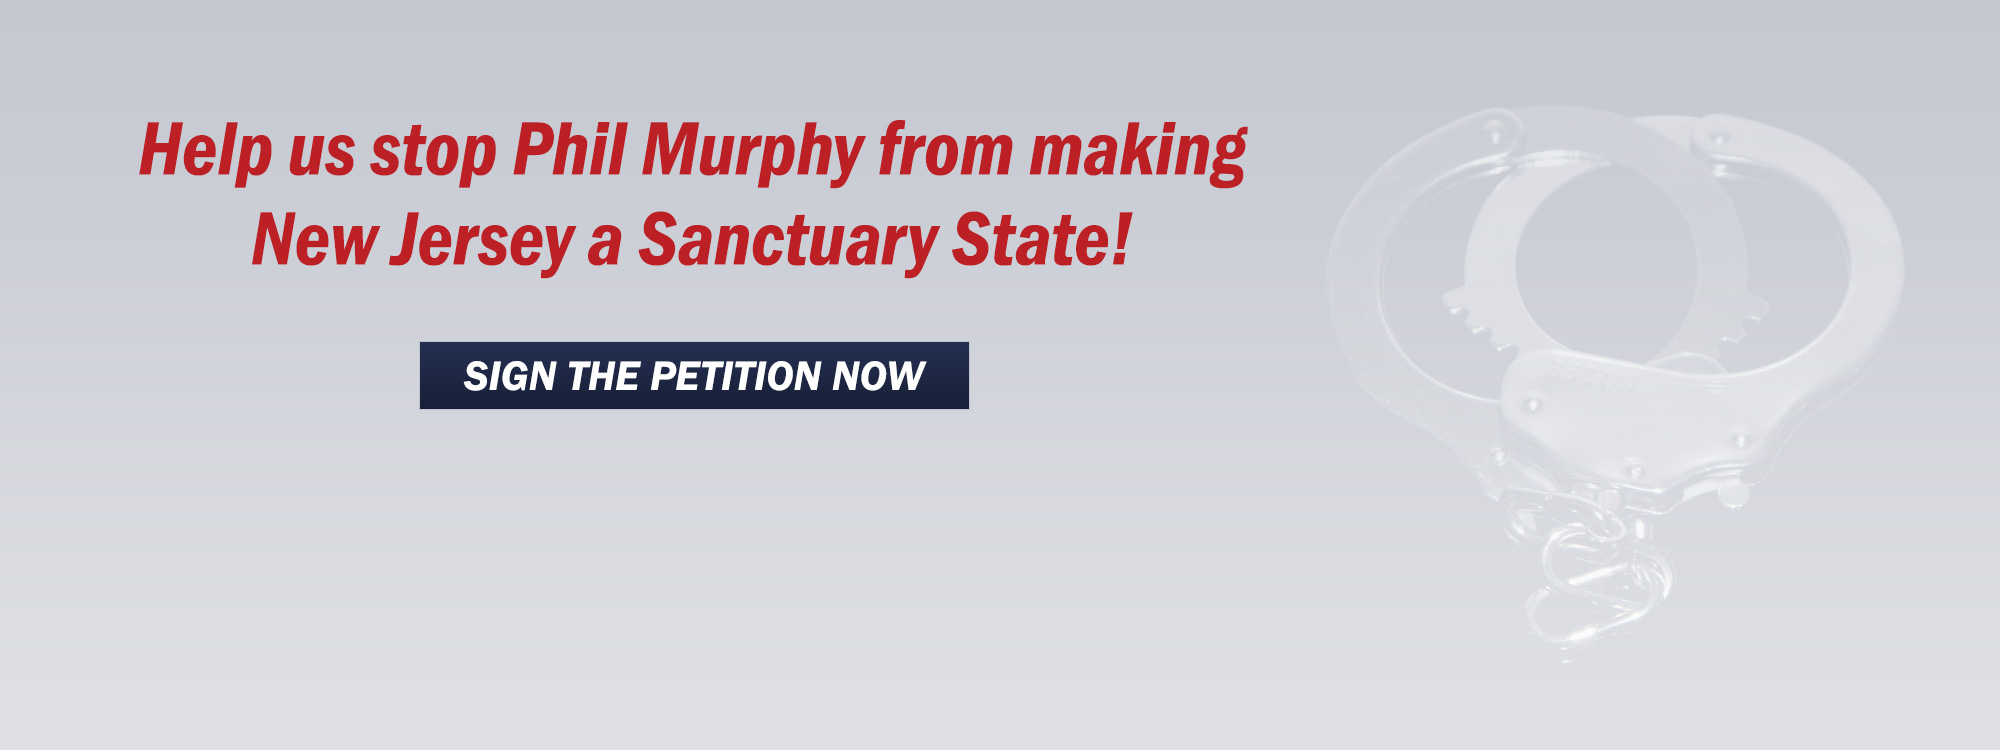 Help us stop Phil Murphy from making New Jersey a Sanctuary State!